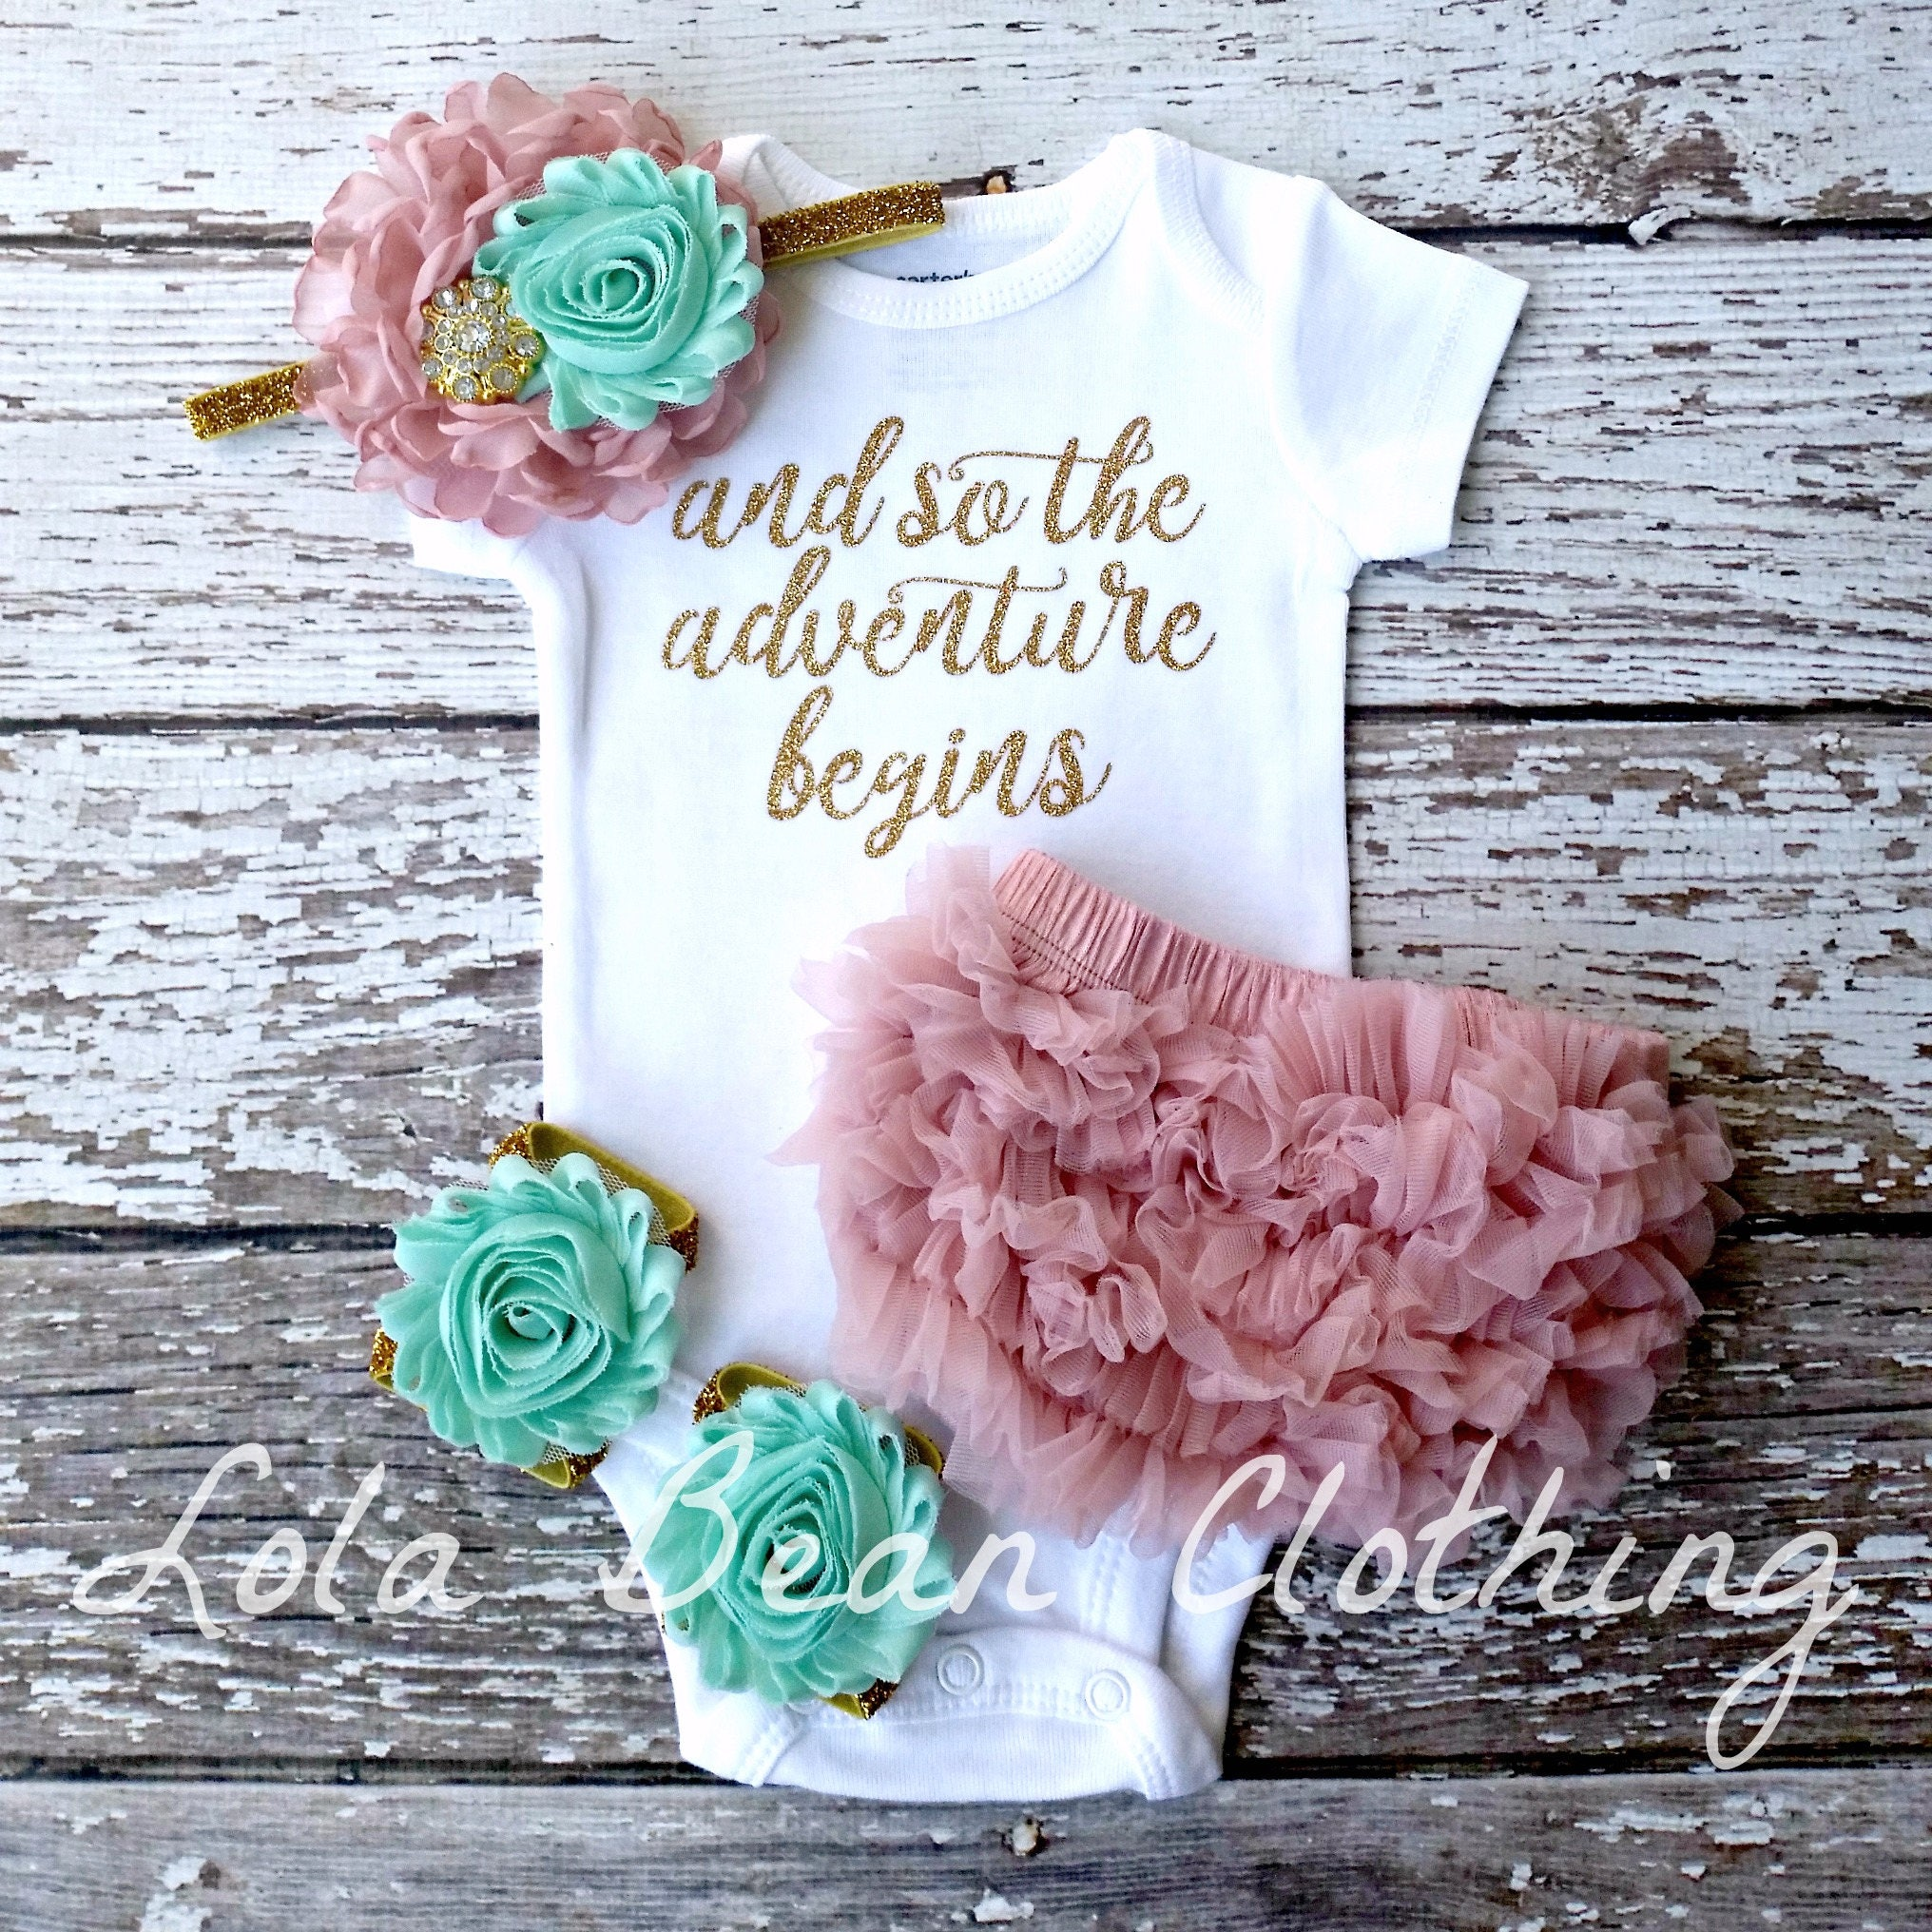 fbab6d8d1dc0 Baby Girl Coming Home Outfit And So the Adventure Begins Take ...